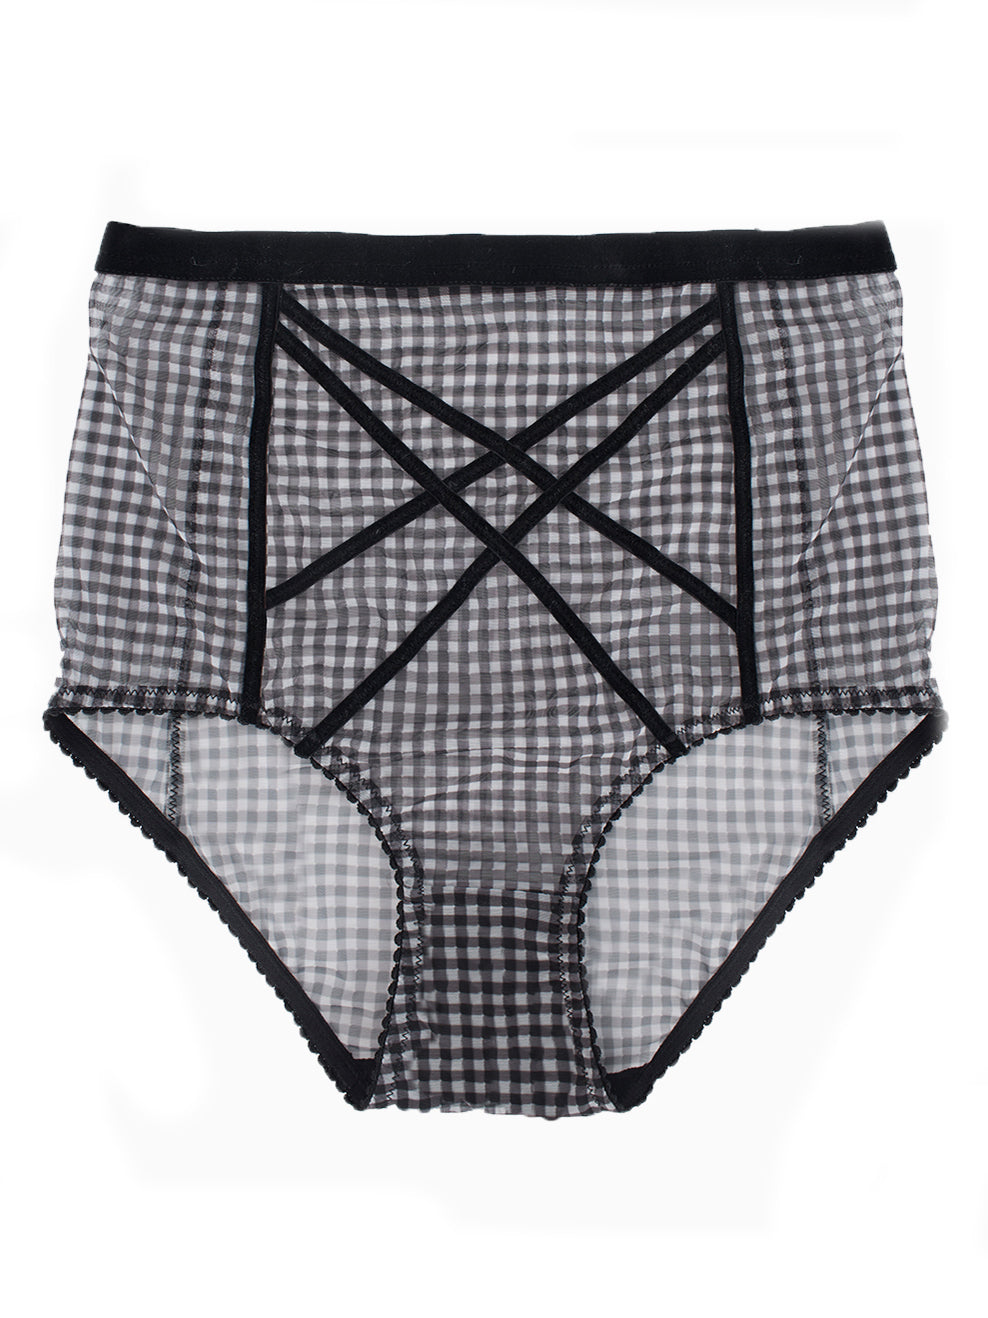 Buy Gigi high-waist brief gingham print by Lonely | Finding Rosie lingerie shop